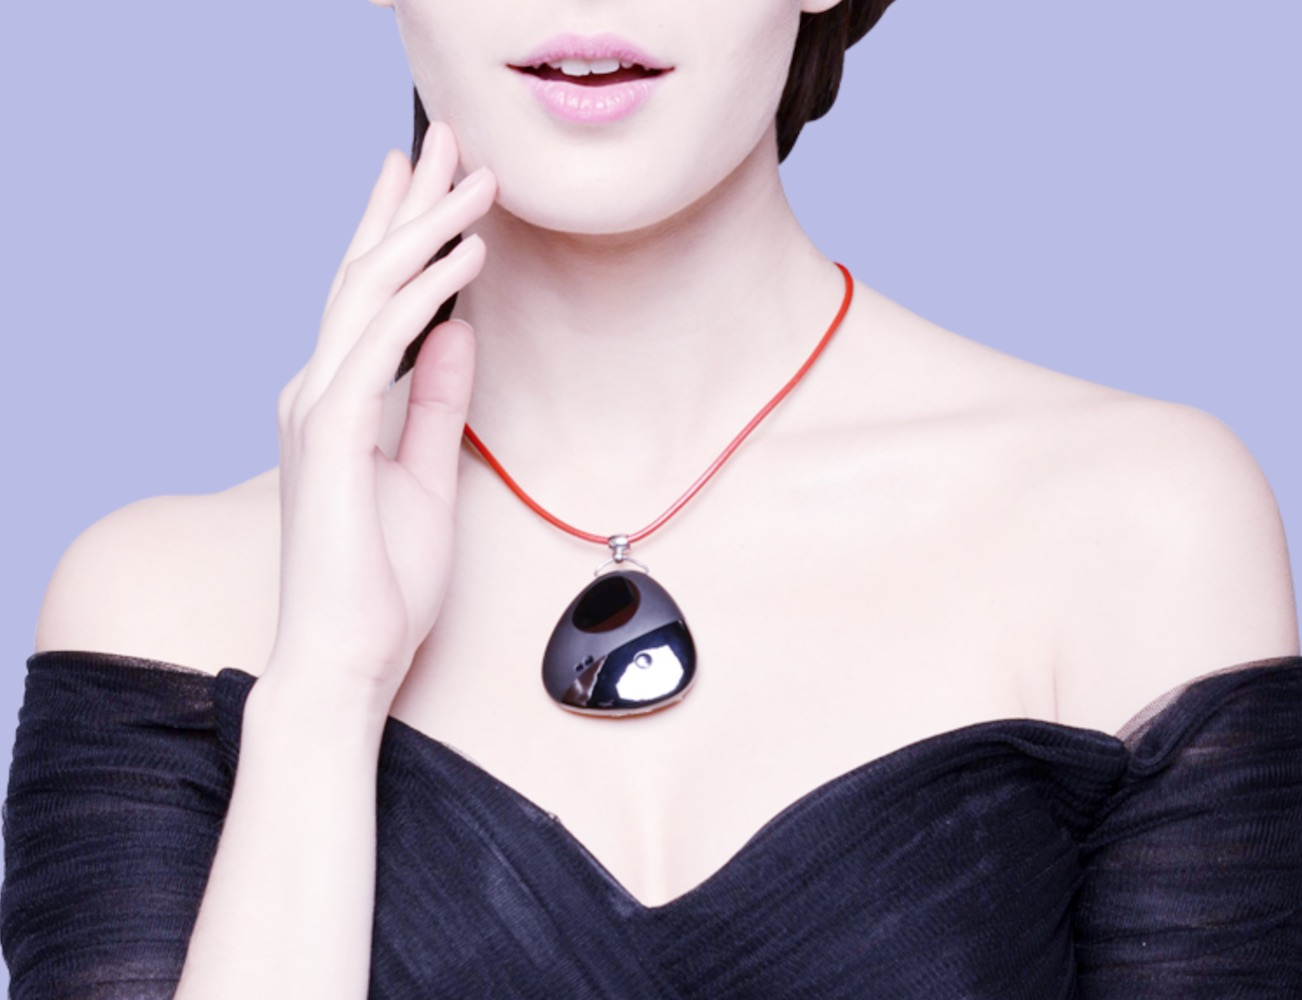 Miragii – Custom Designed Smart Necklace with Bluetooth Compatibility